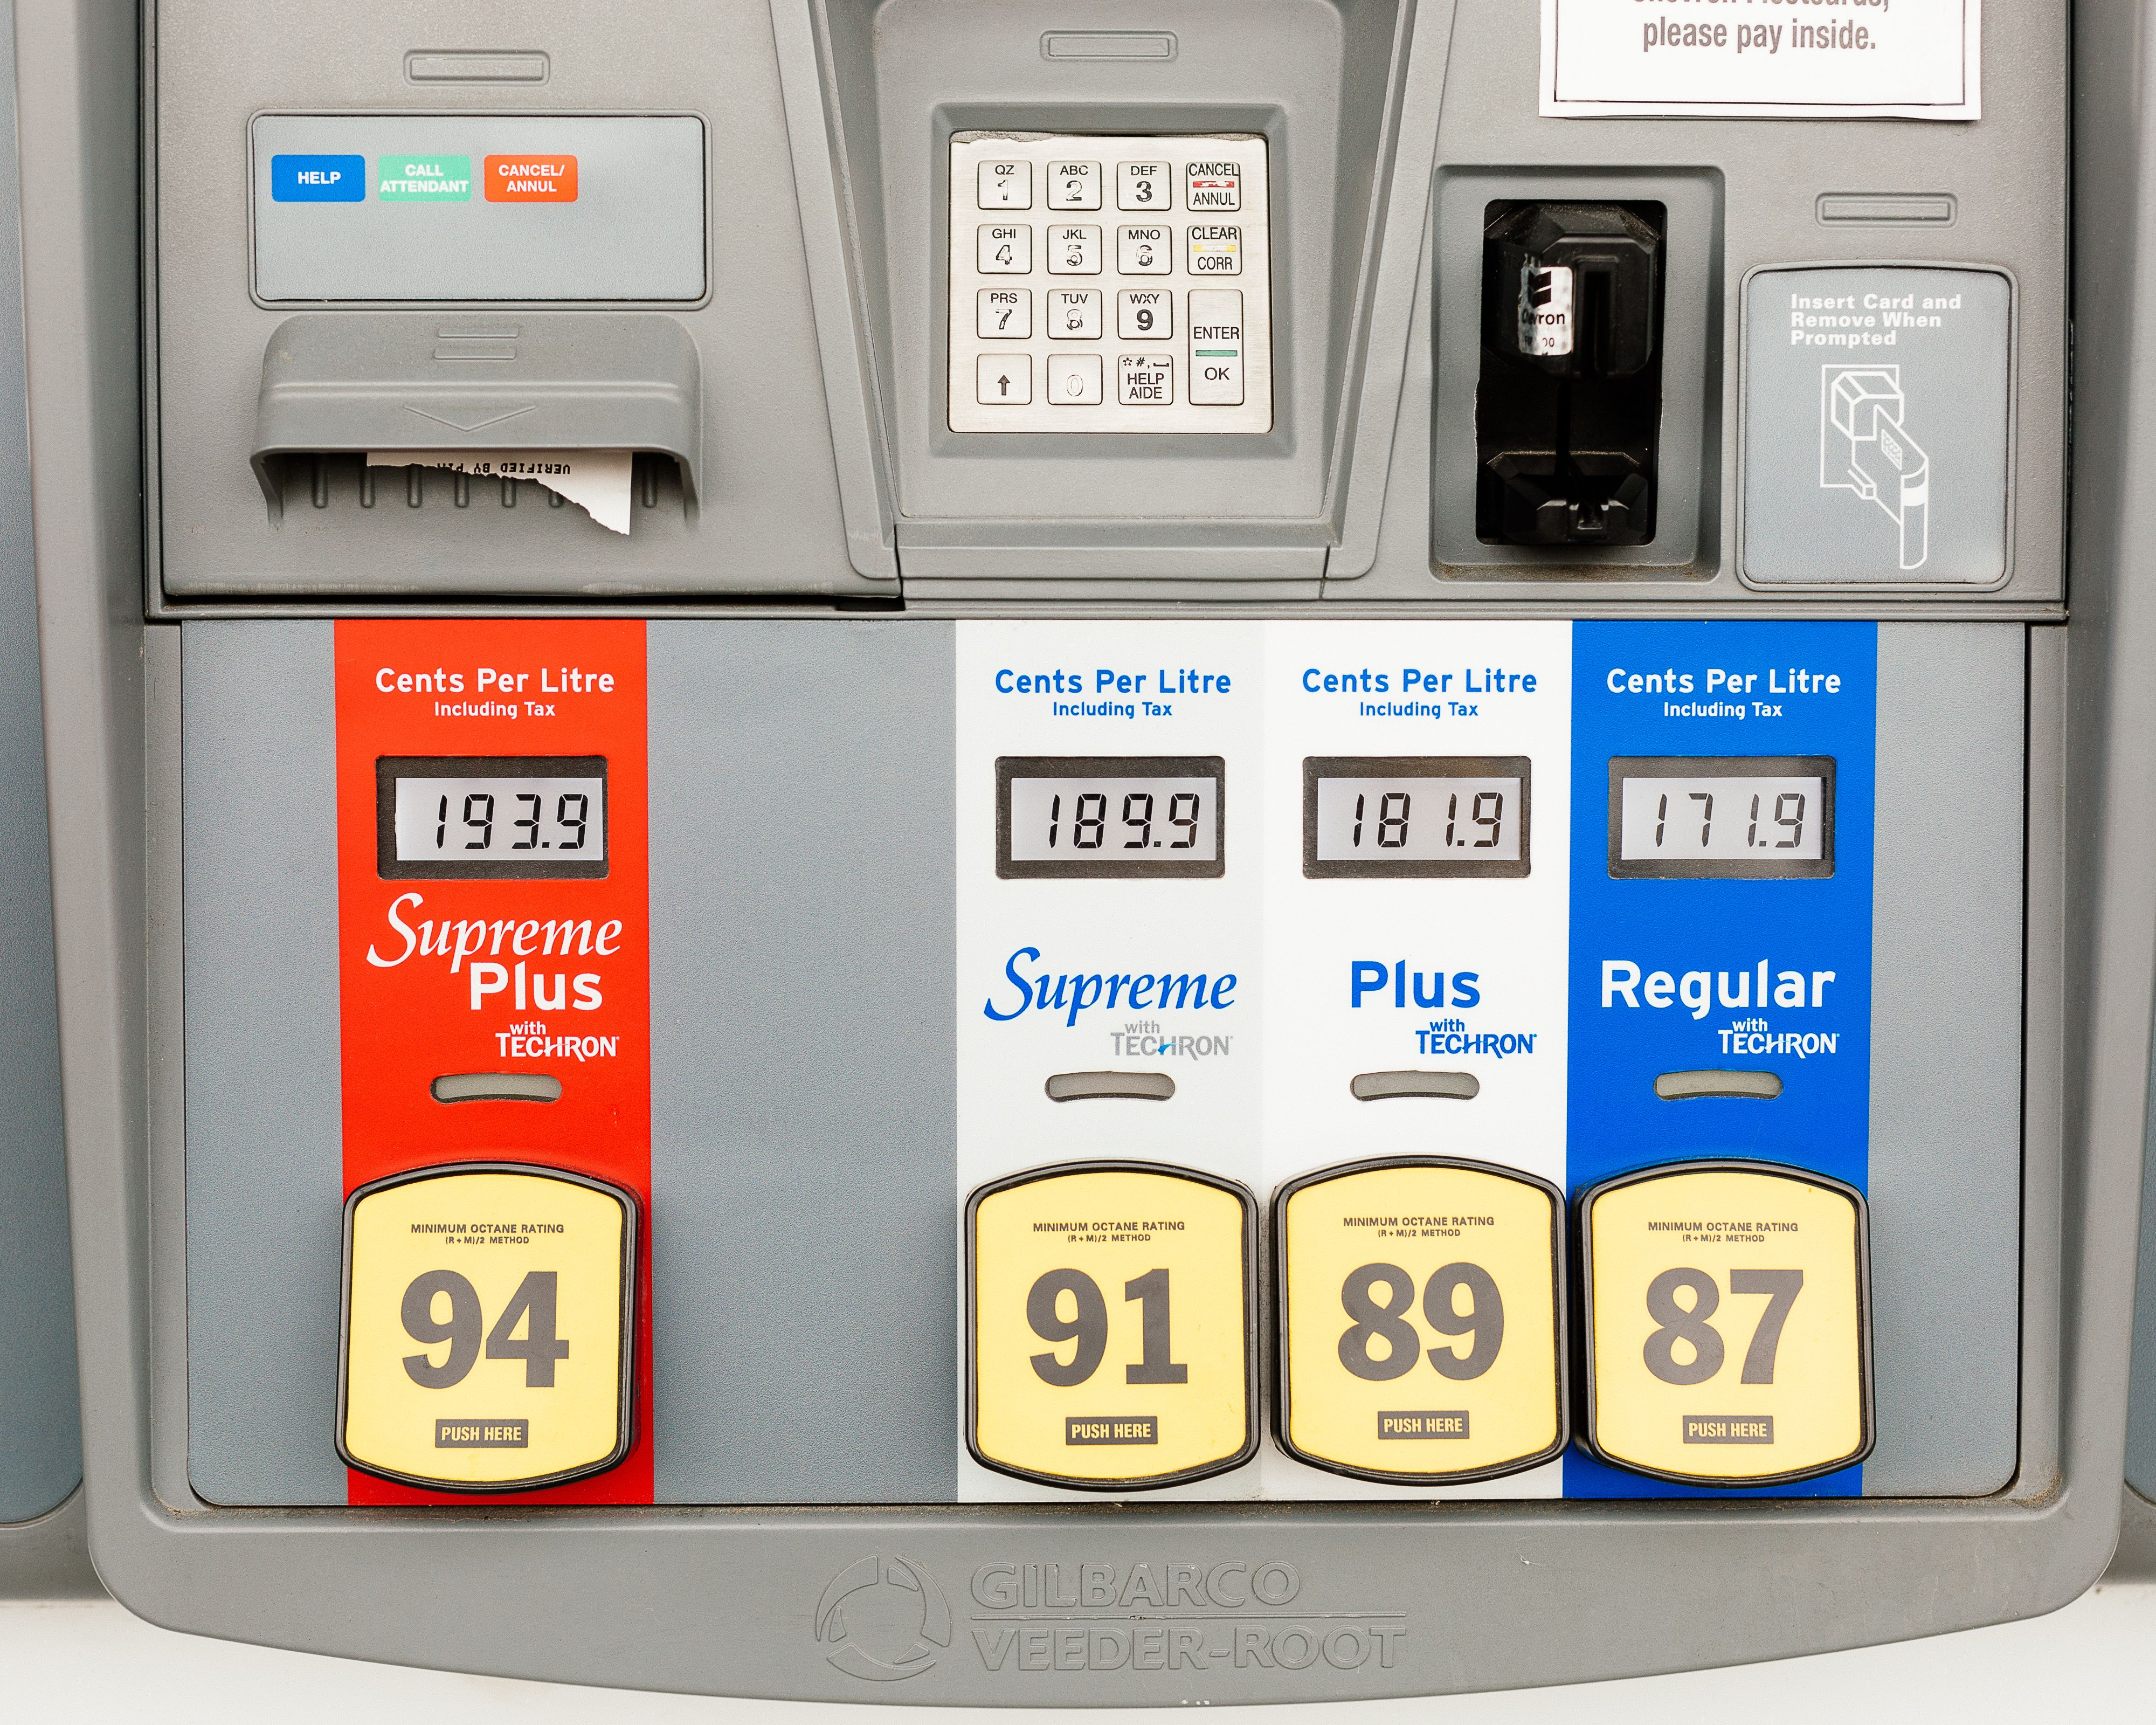 B.C. orders inquiry to make suppliers explain gas markups